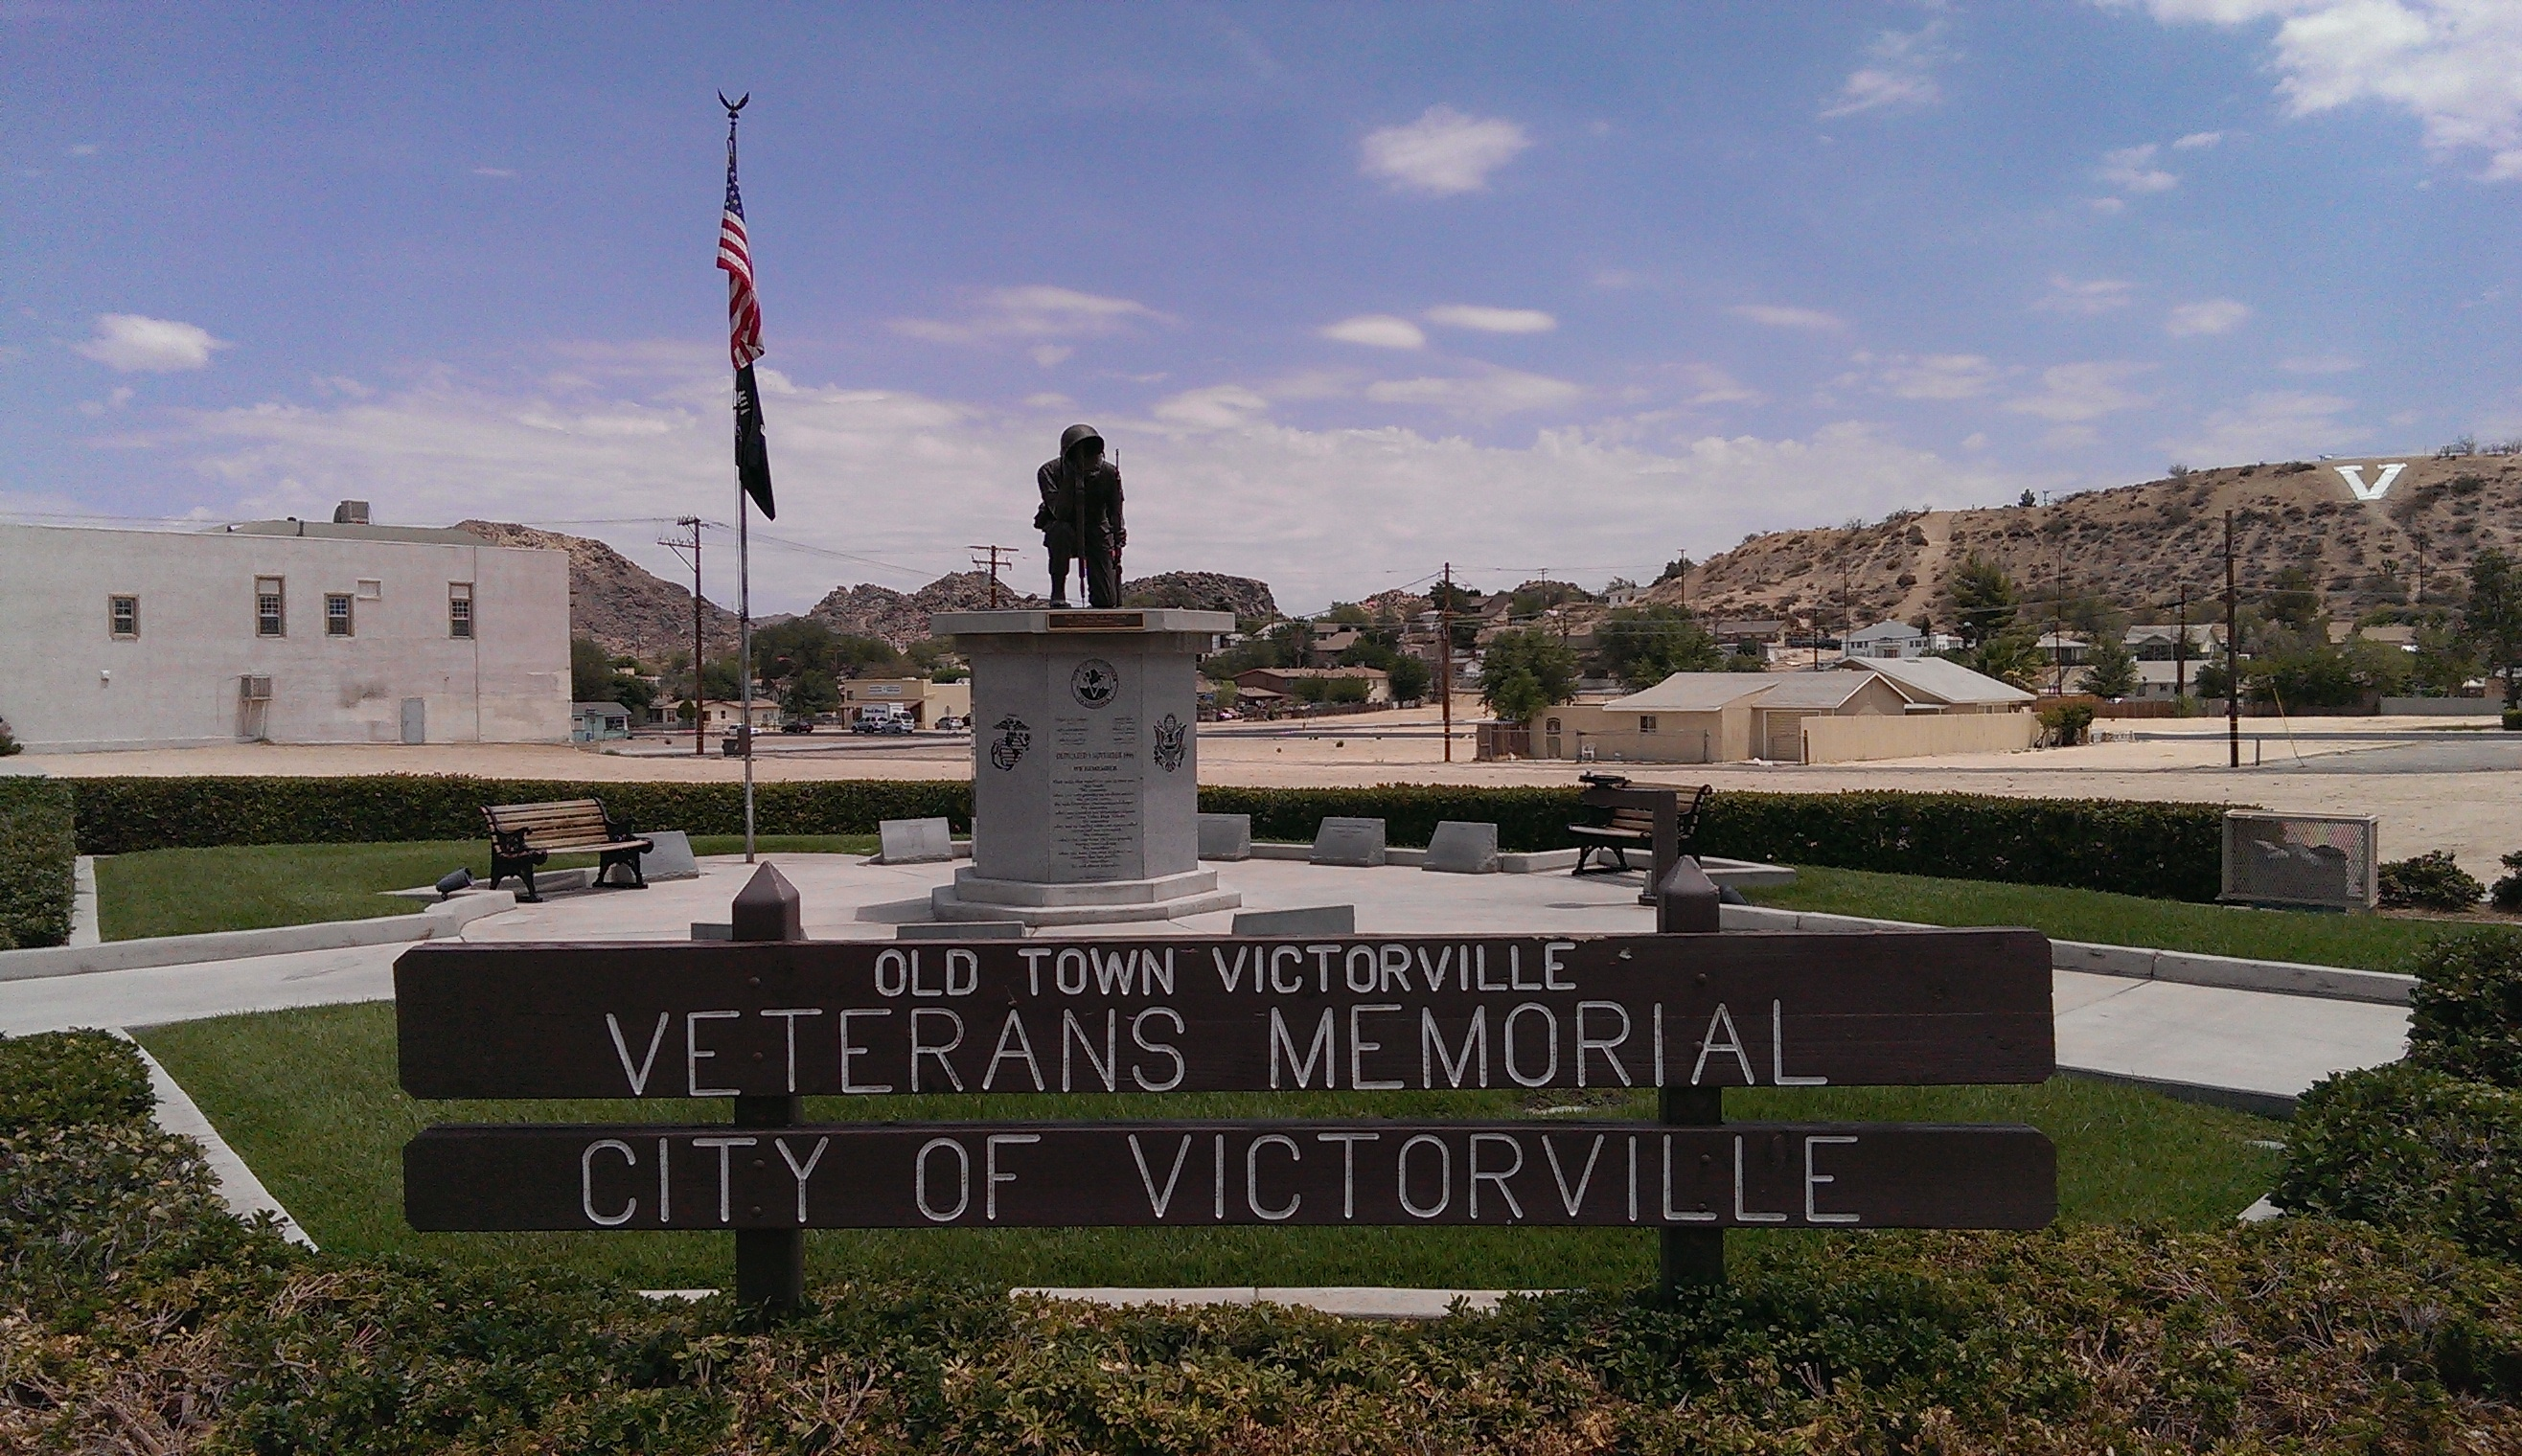 City of Victorville community image